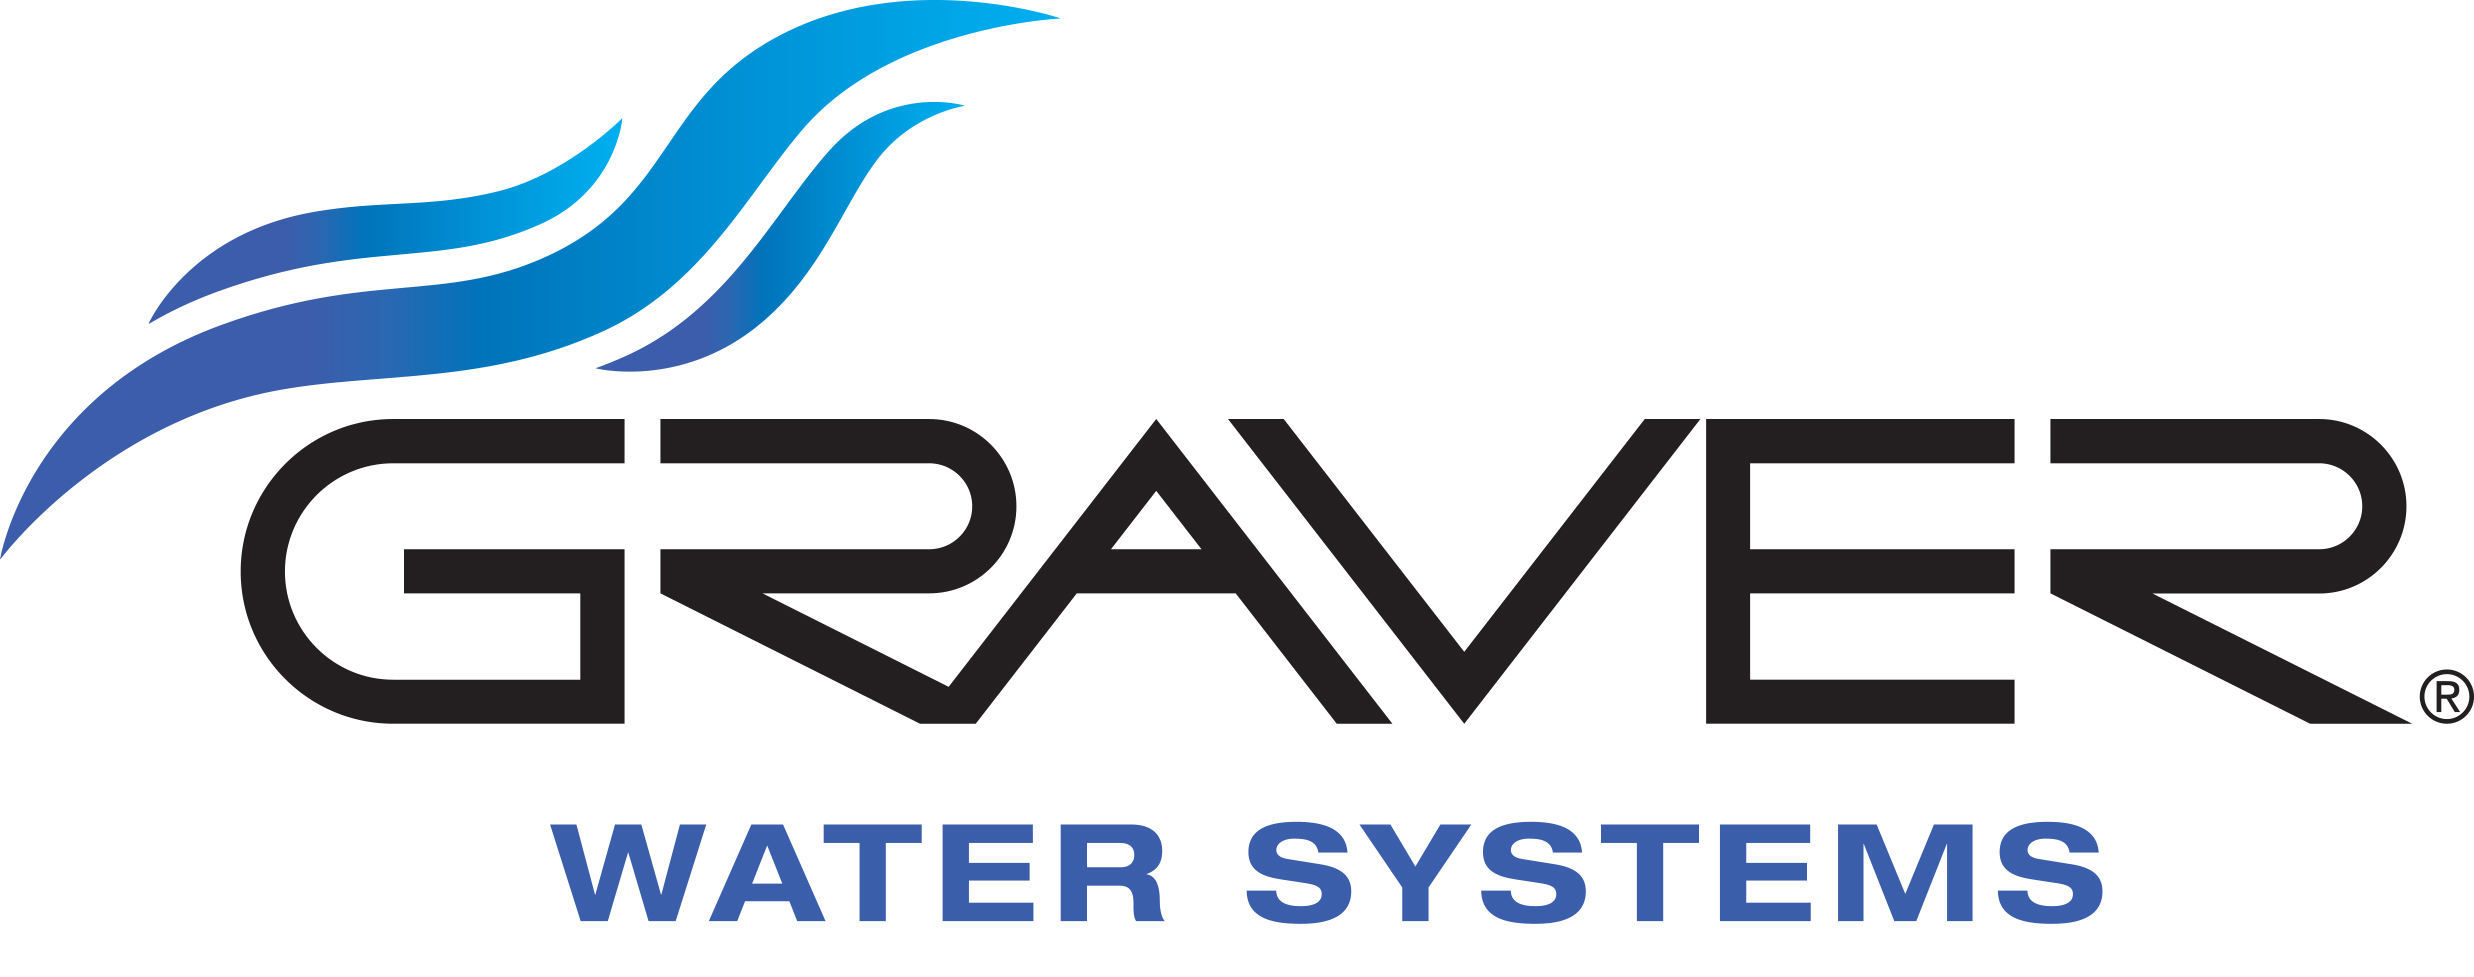 Graver Water Systems, LLC in New Providence, NJ. Water & wastewater treatment equipment & condensate polishing systems.